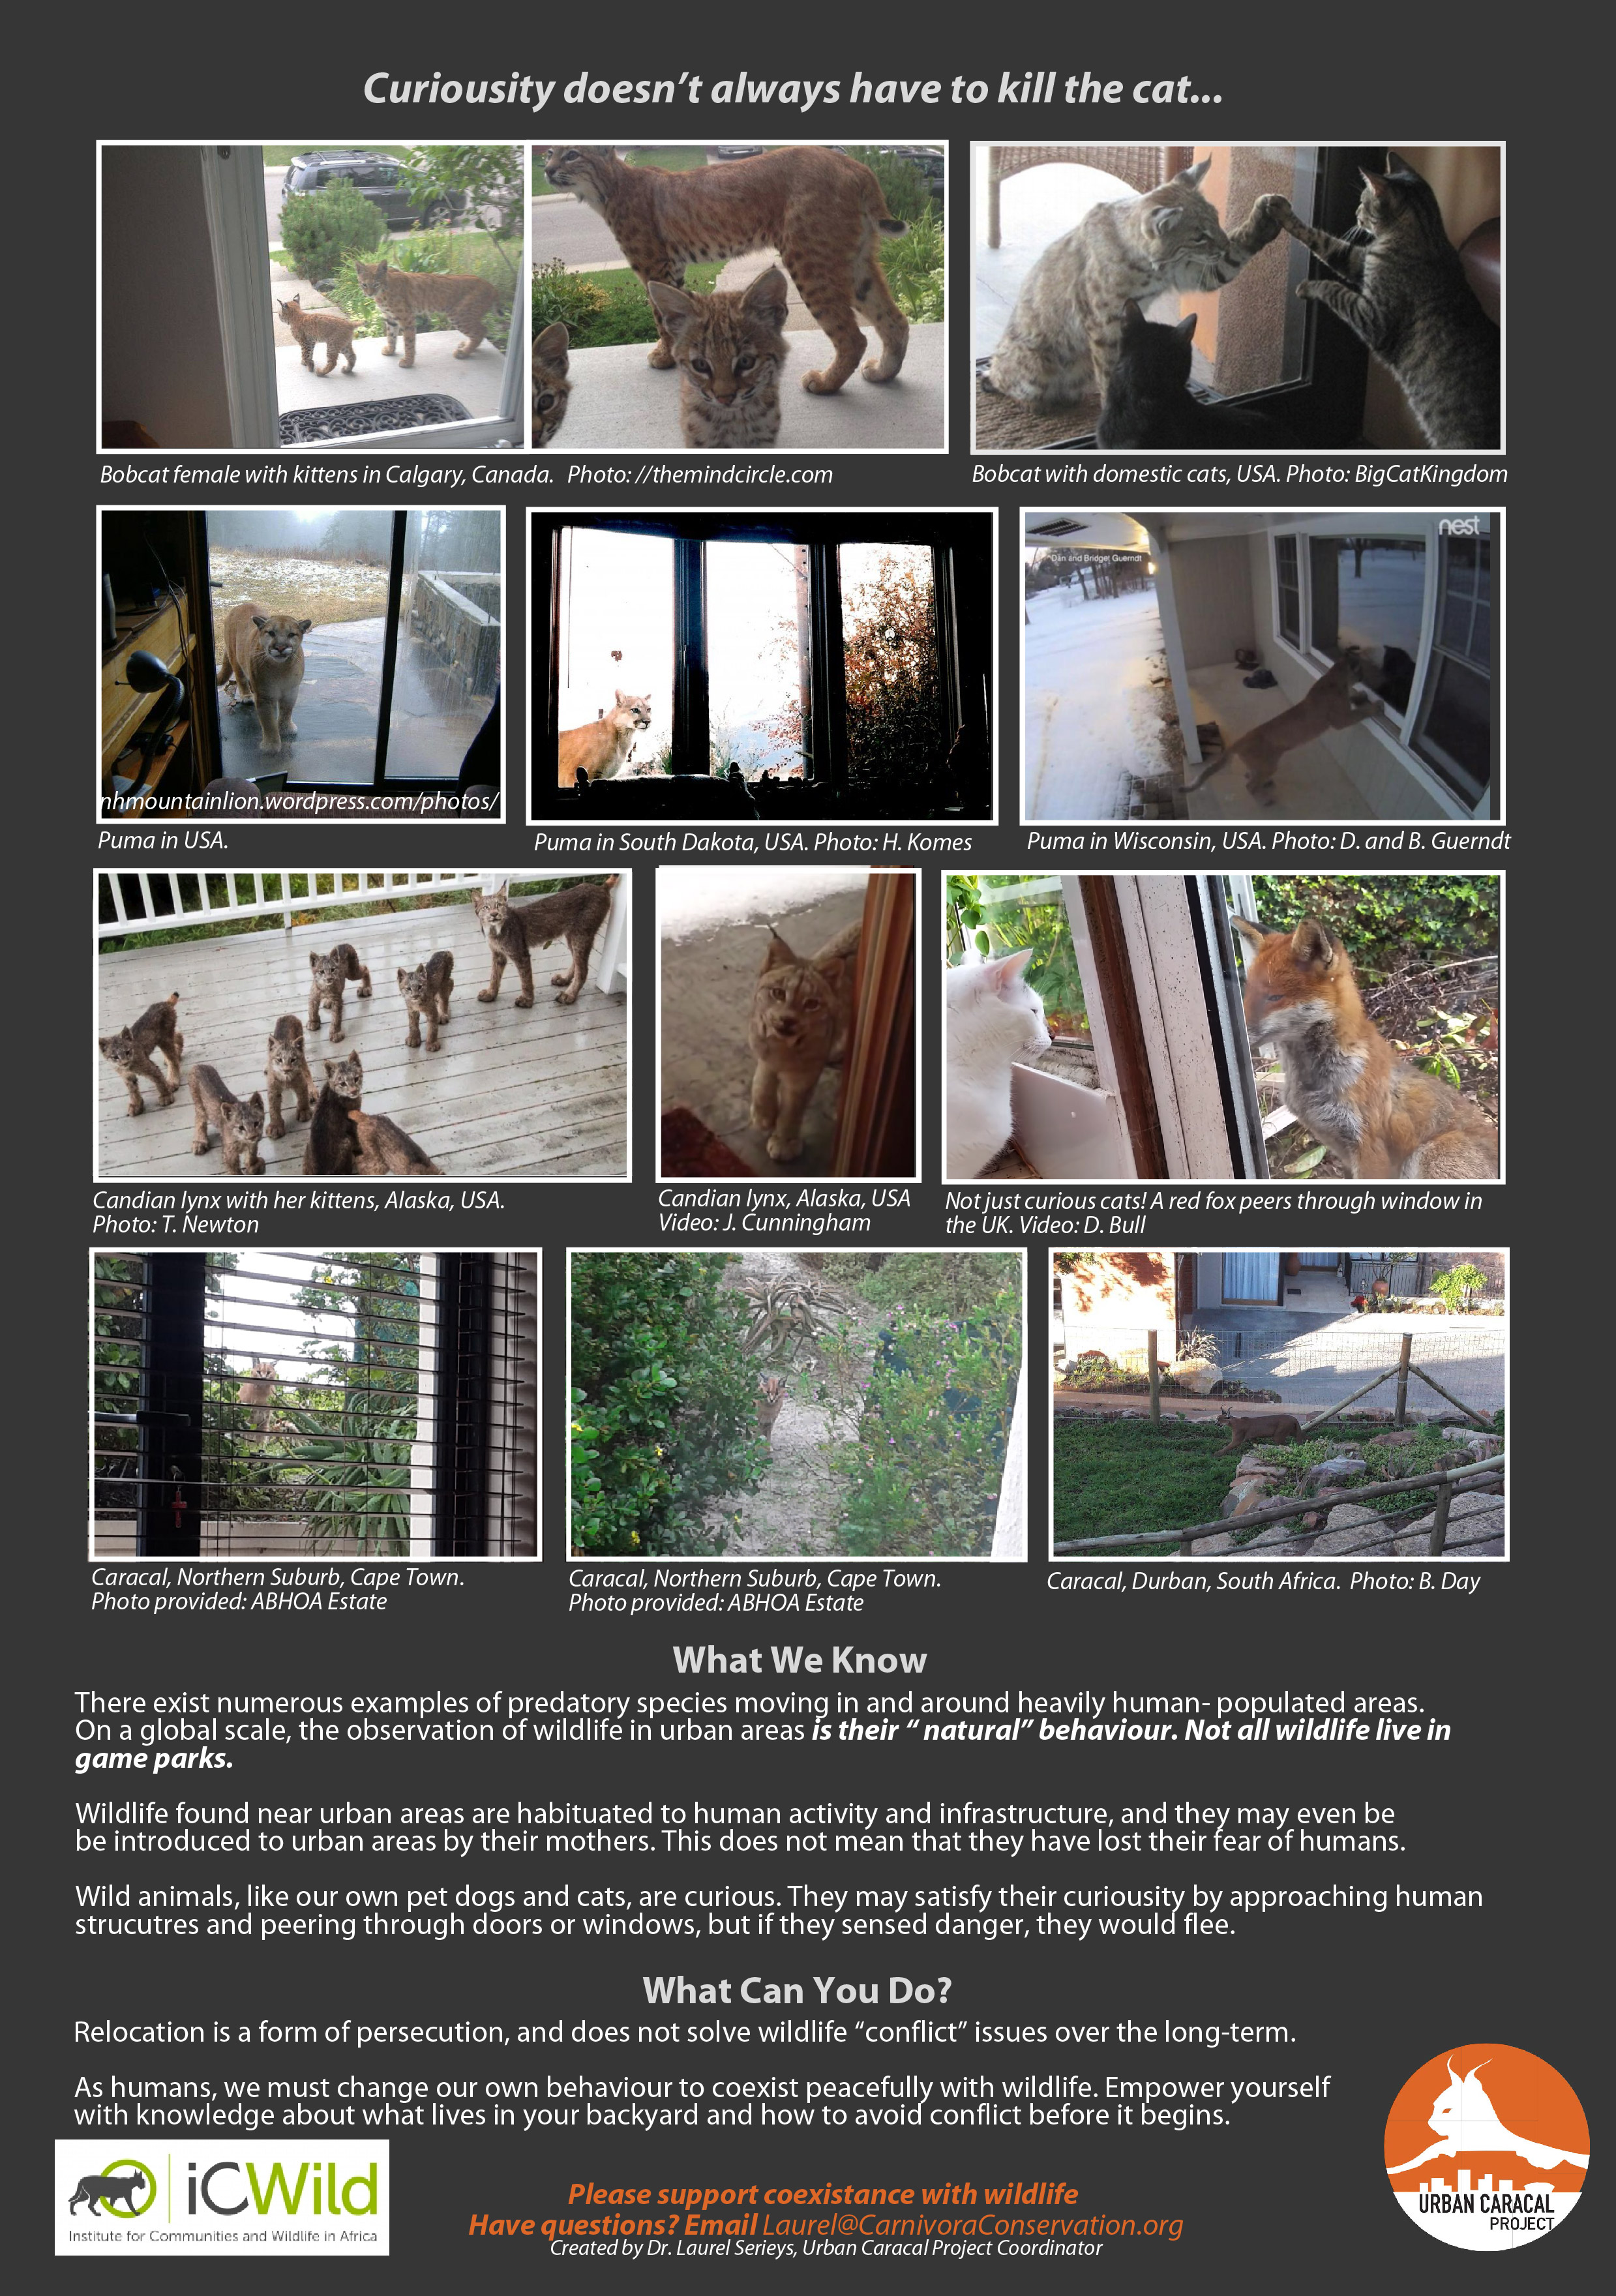 Curiousity doesn't always have to kill the cat.... - July 18, 2018